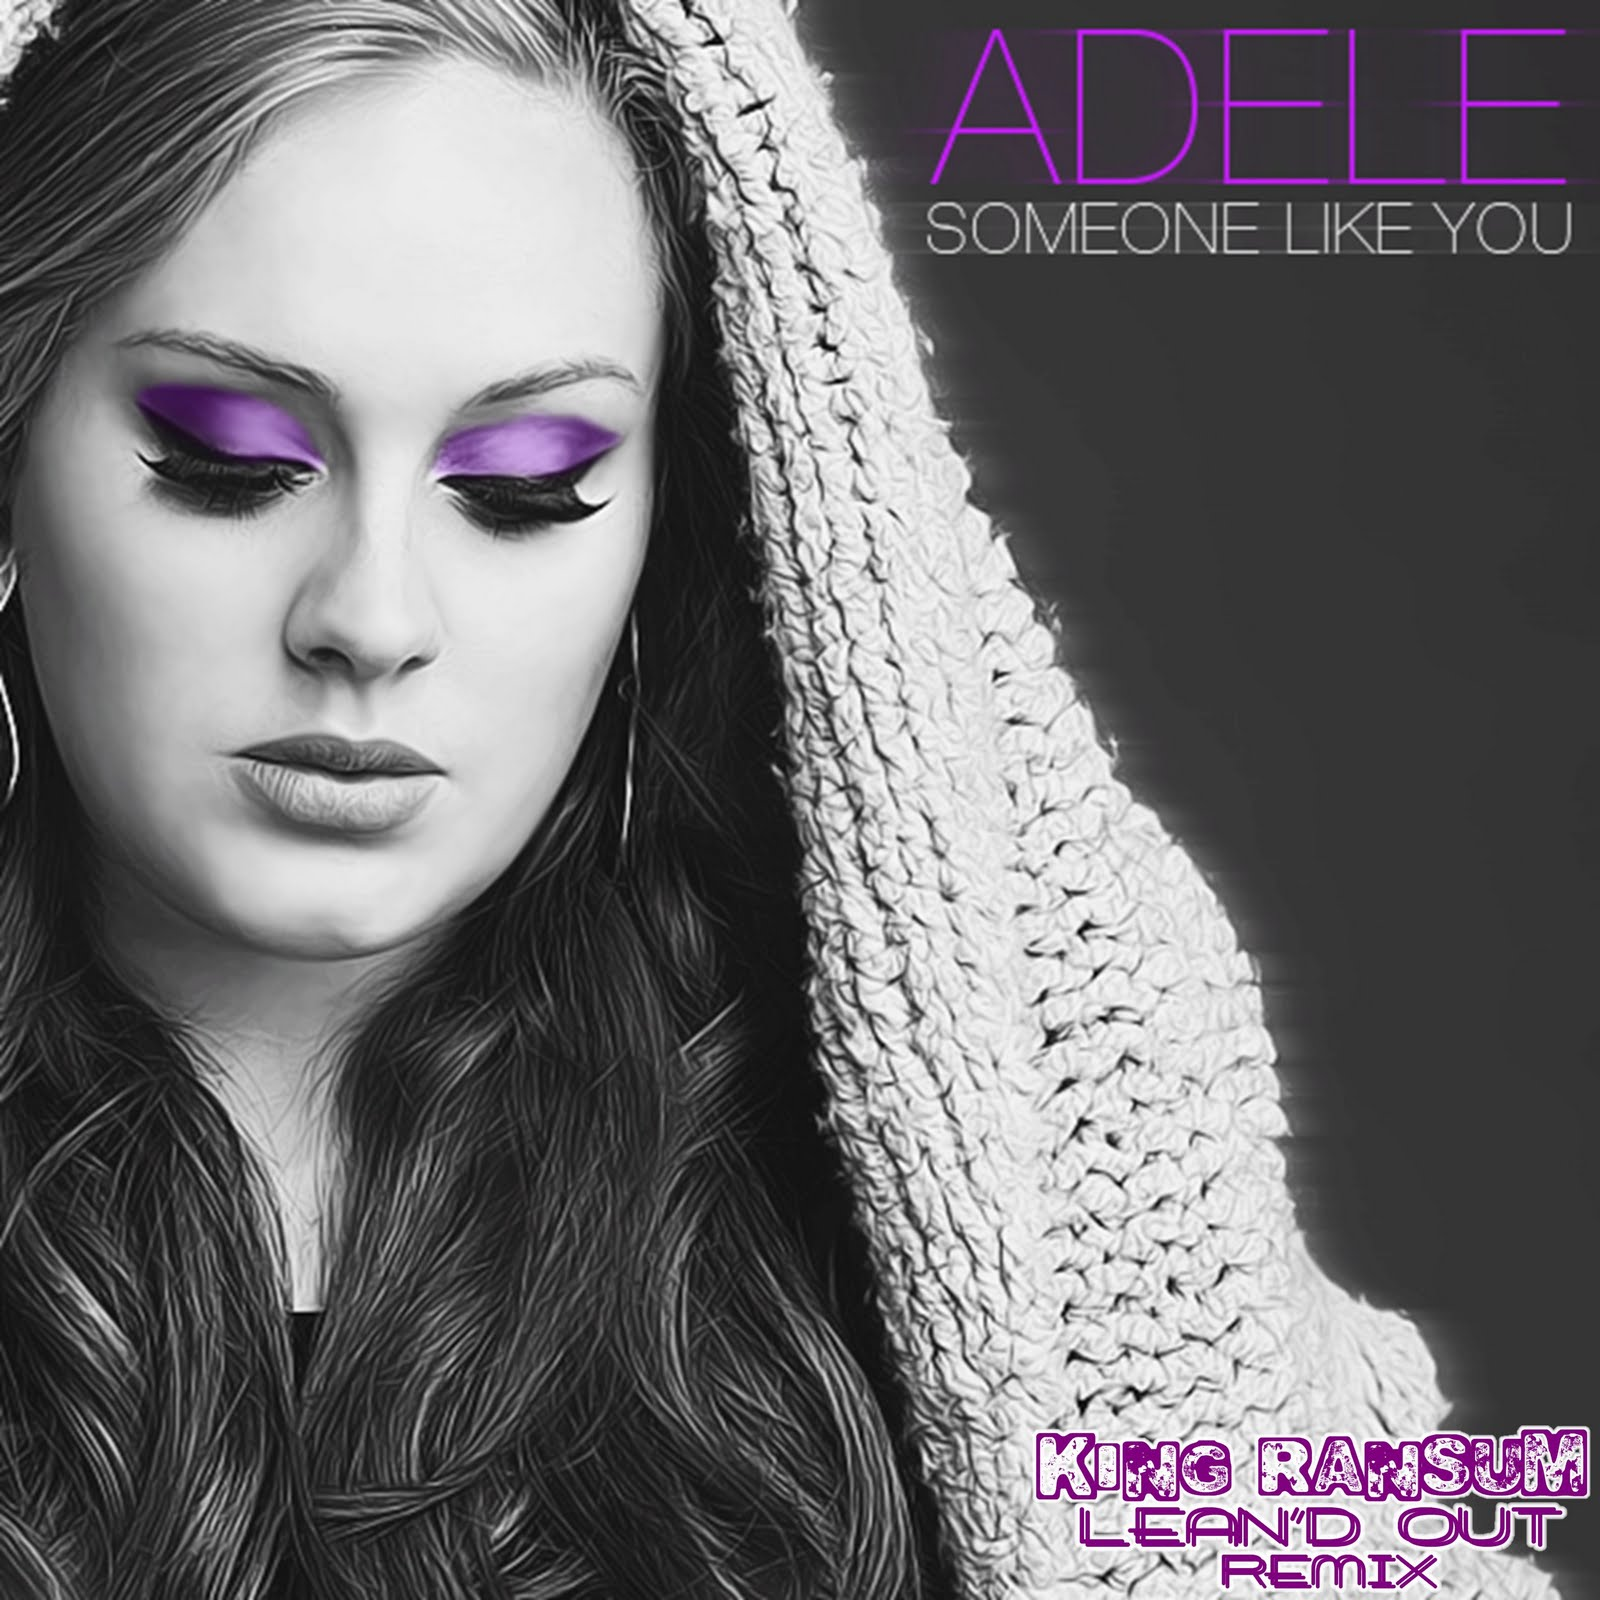 Adele Live Rolling In The Deep: Someone Like You (king Ransum Lean'd